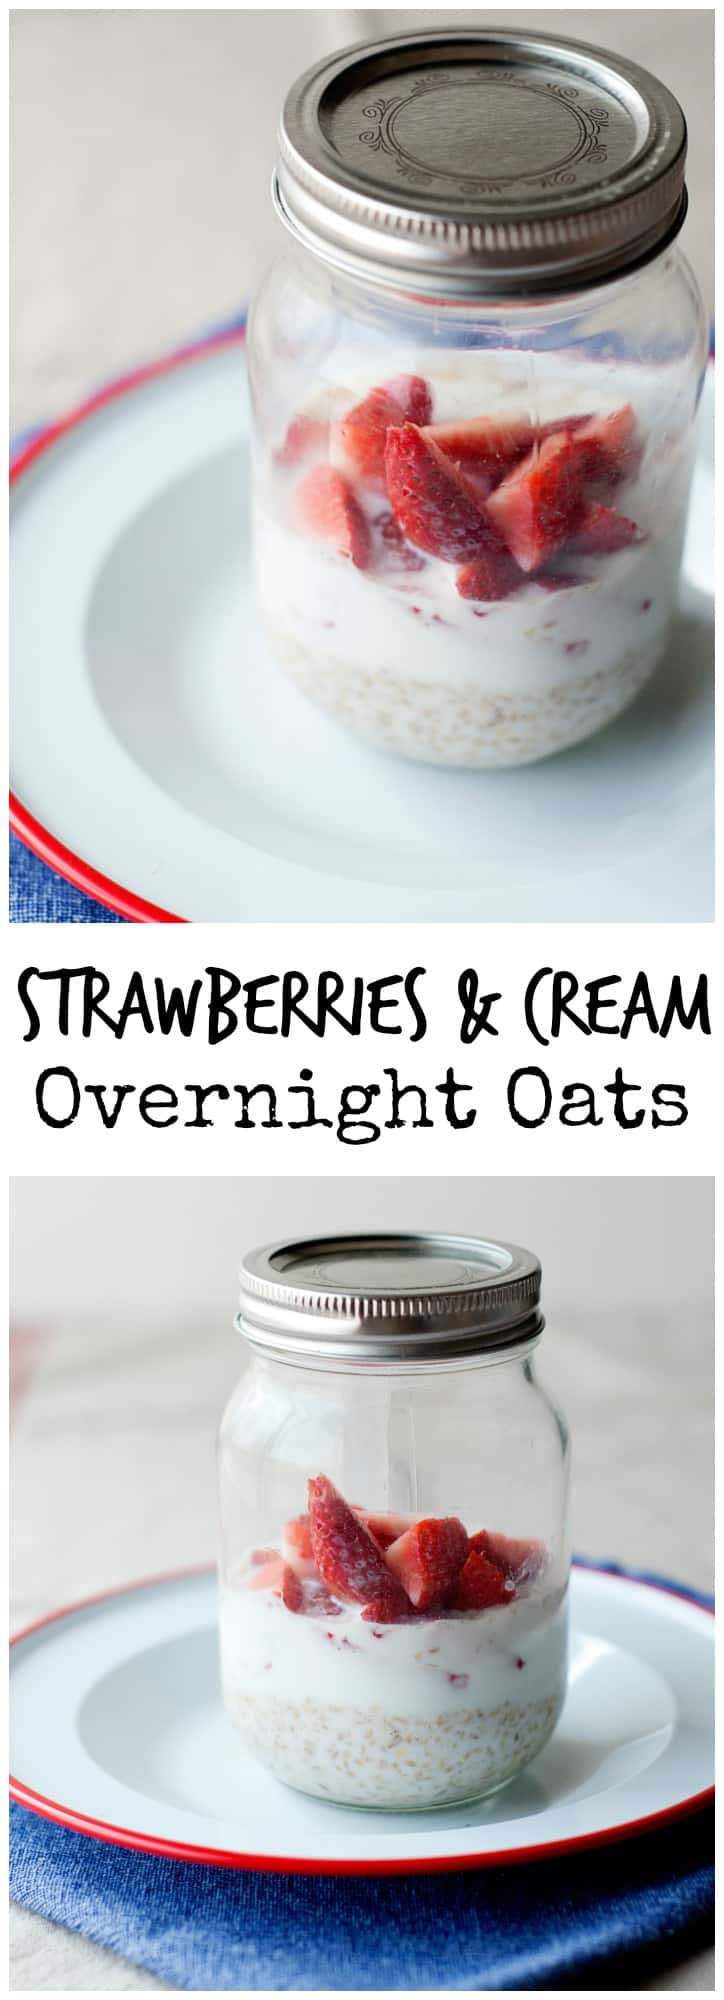 This easy strawberries and cream overnight oats recipe is so delicious you'll want to have them for desert too!